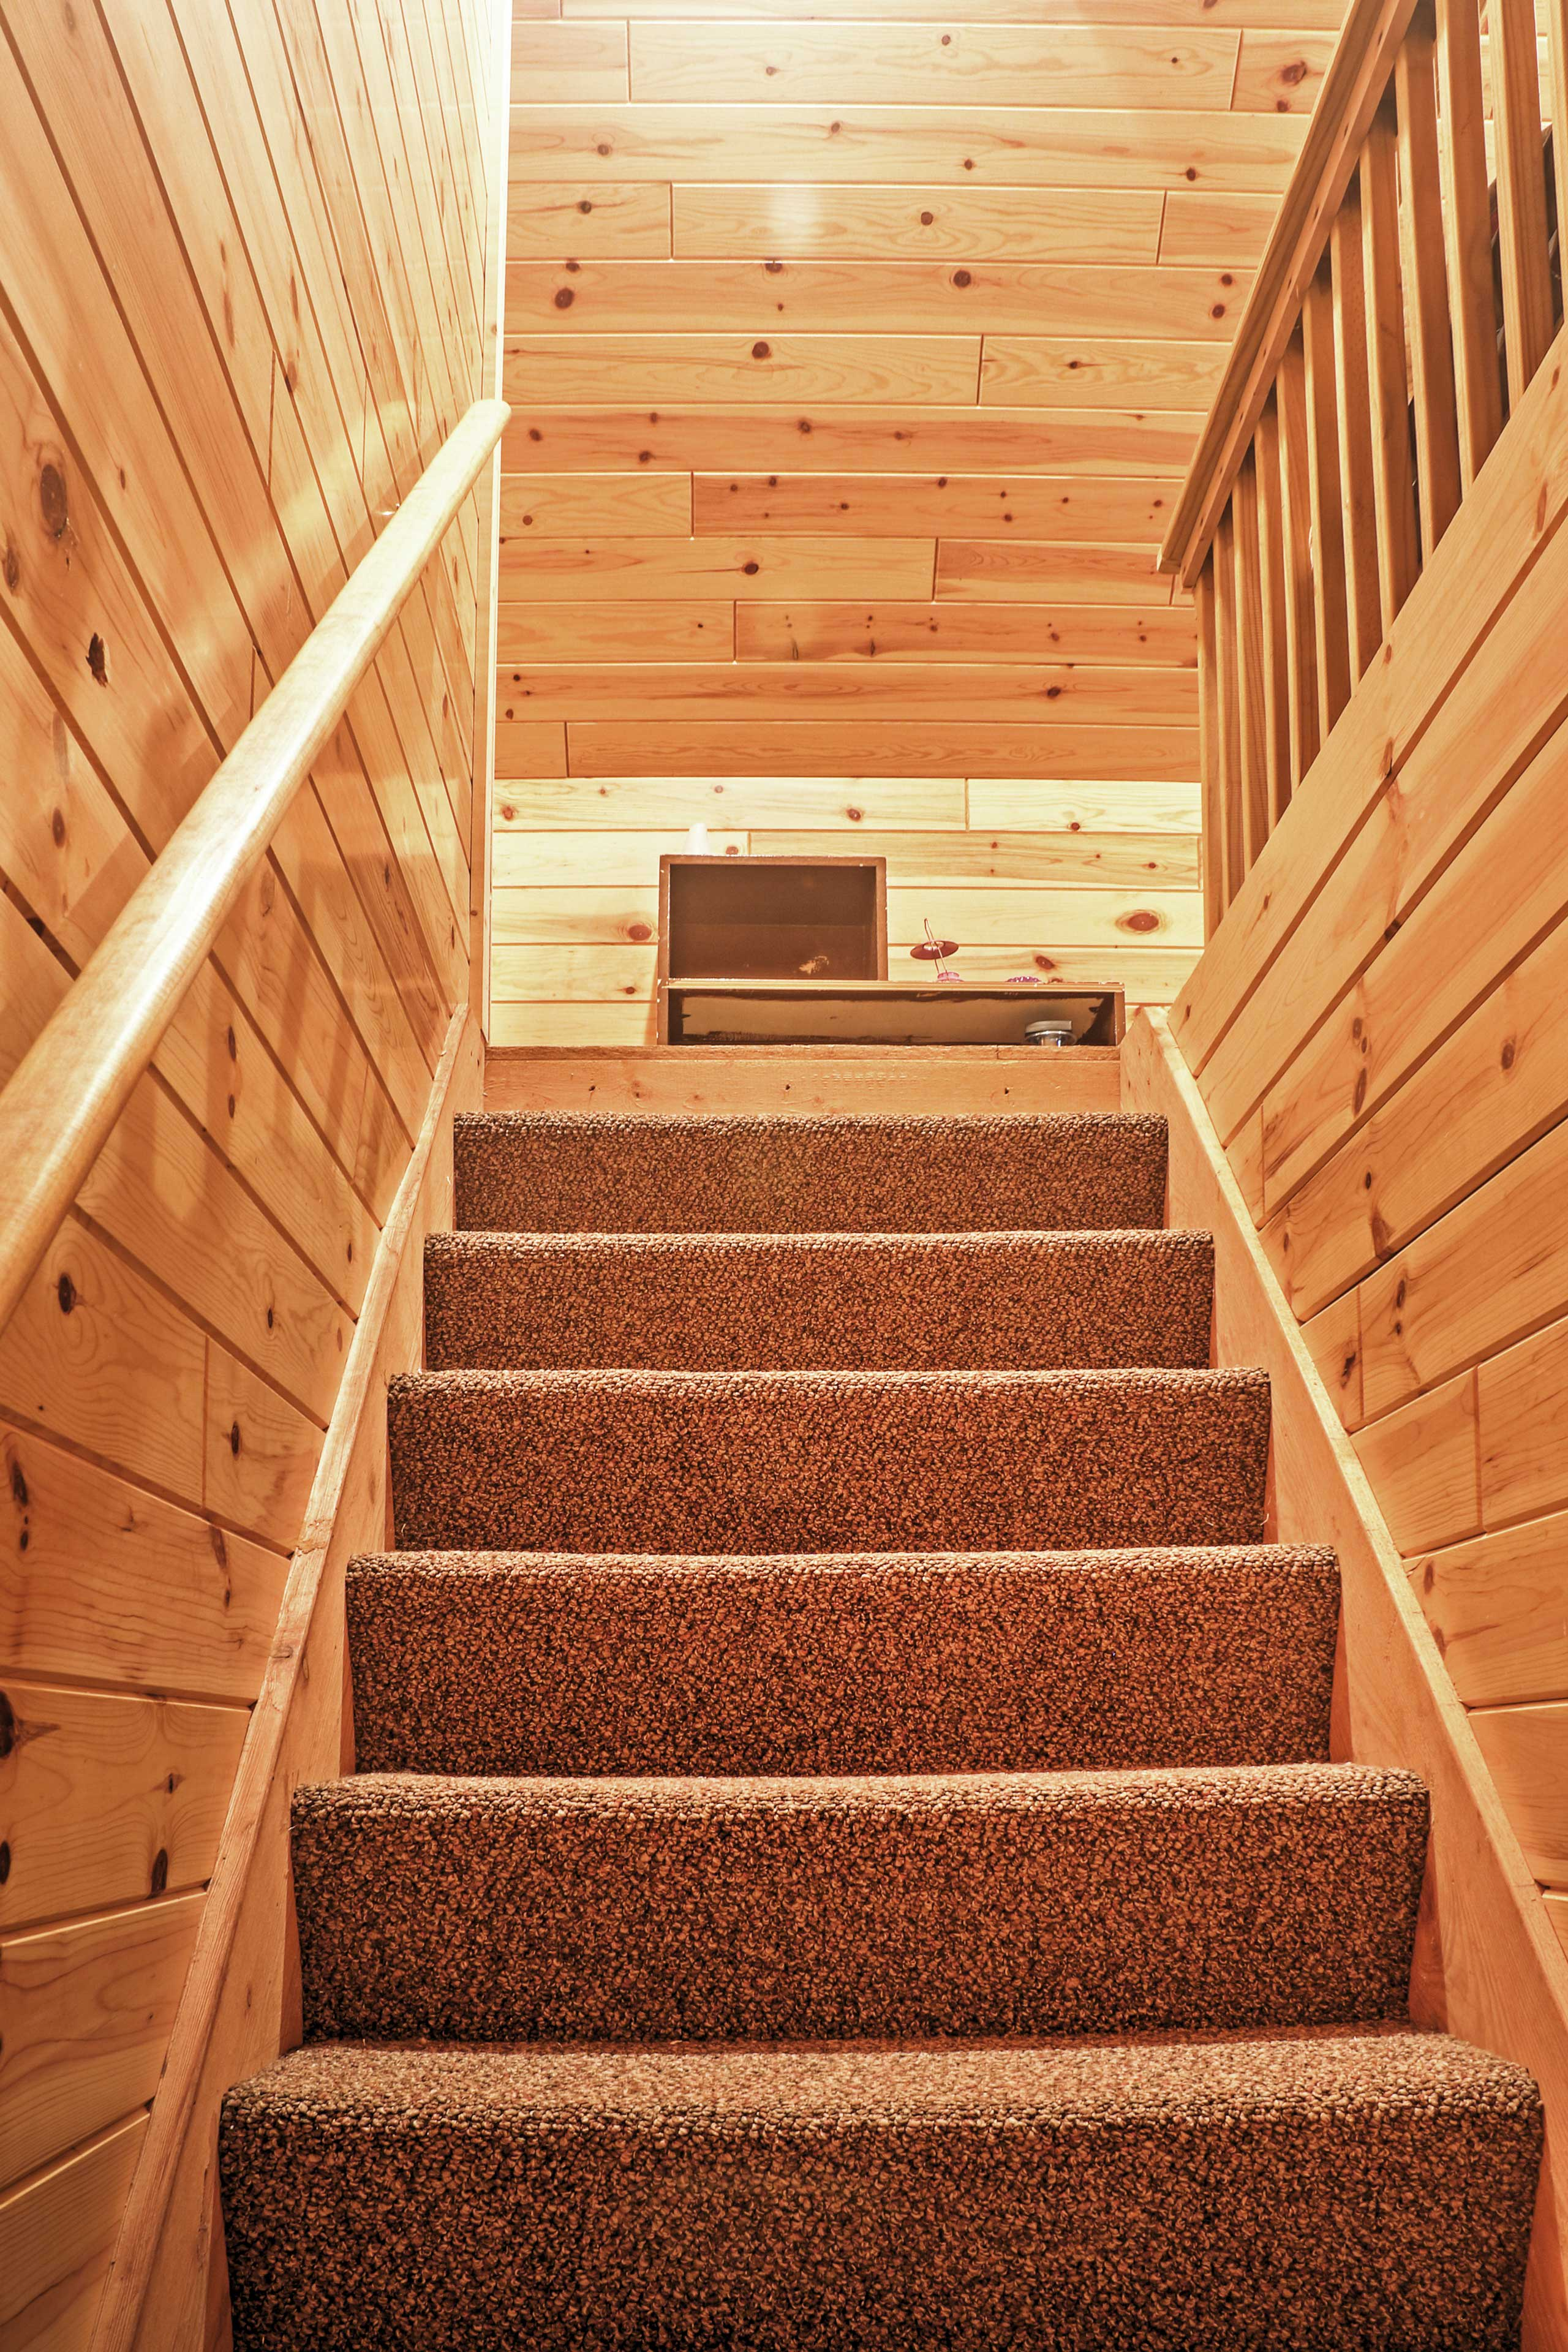 Head up the stairs to find the other 2 cape cod style sleeping areas.